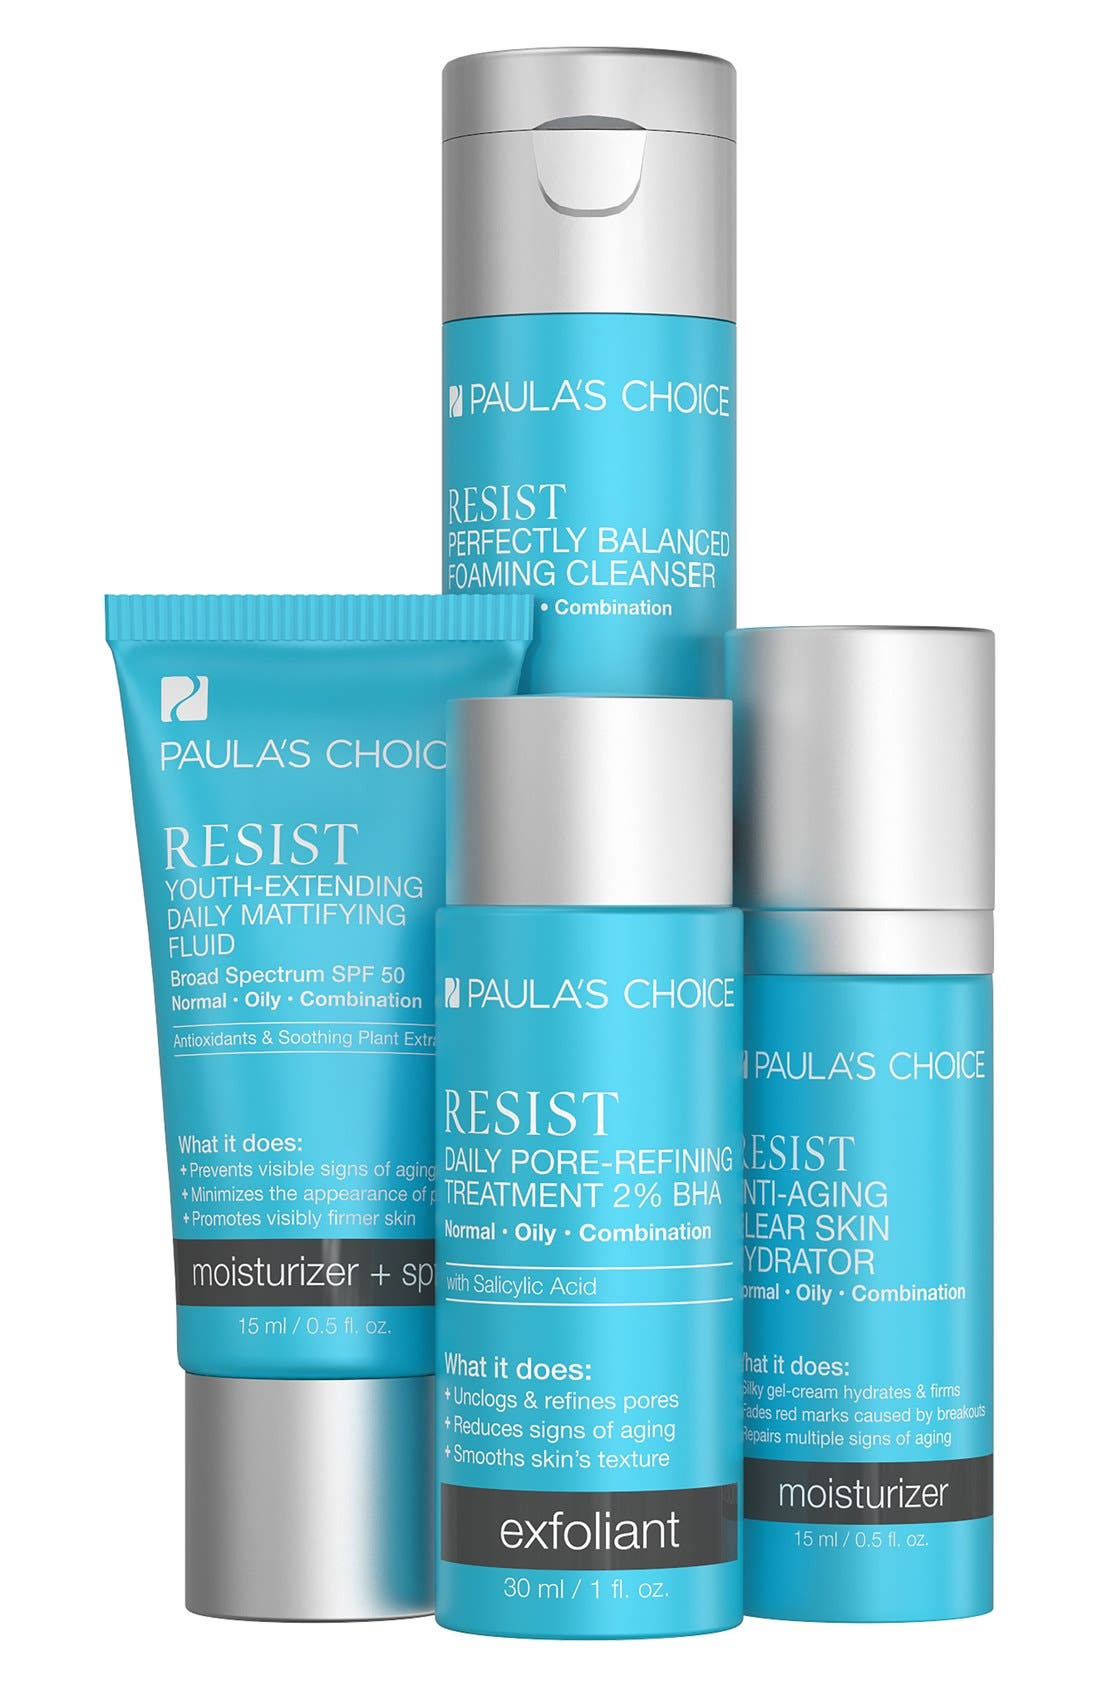 Paula's Choice Resist Trial Kit for Wrinkles & Breakouts